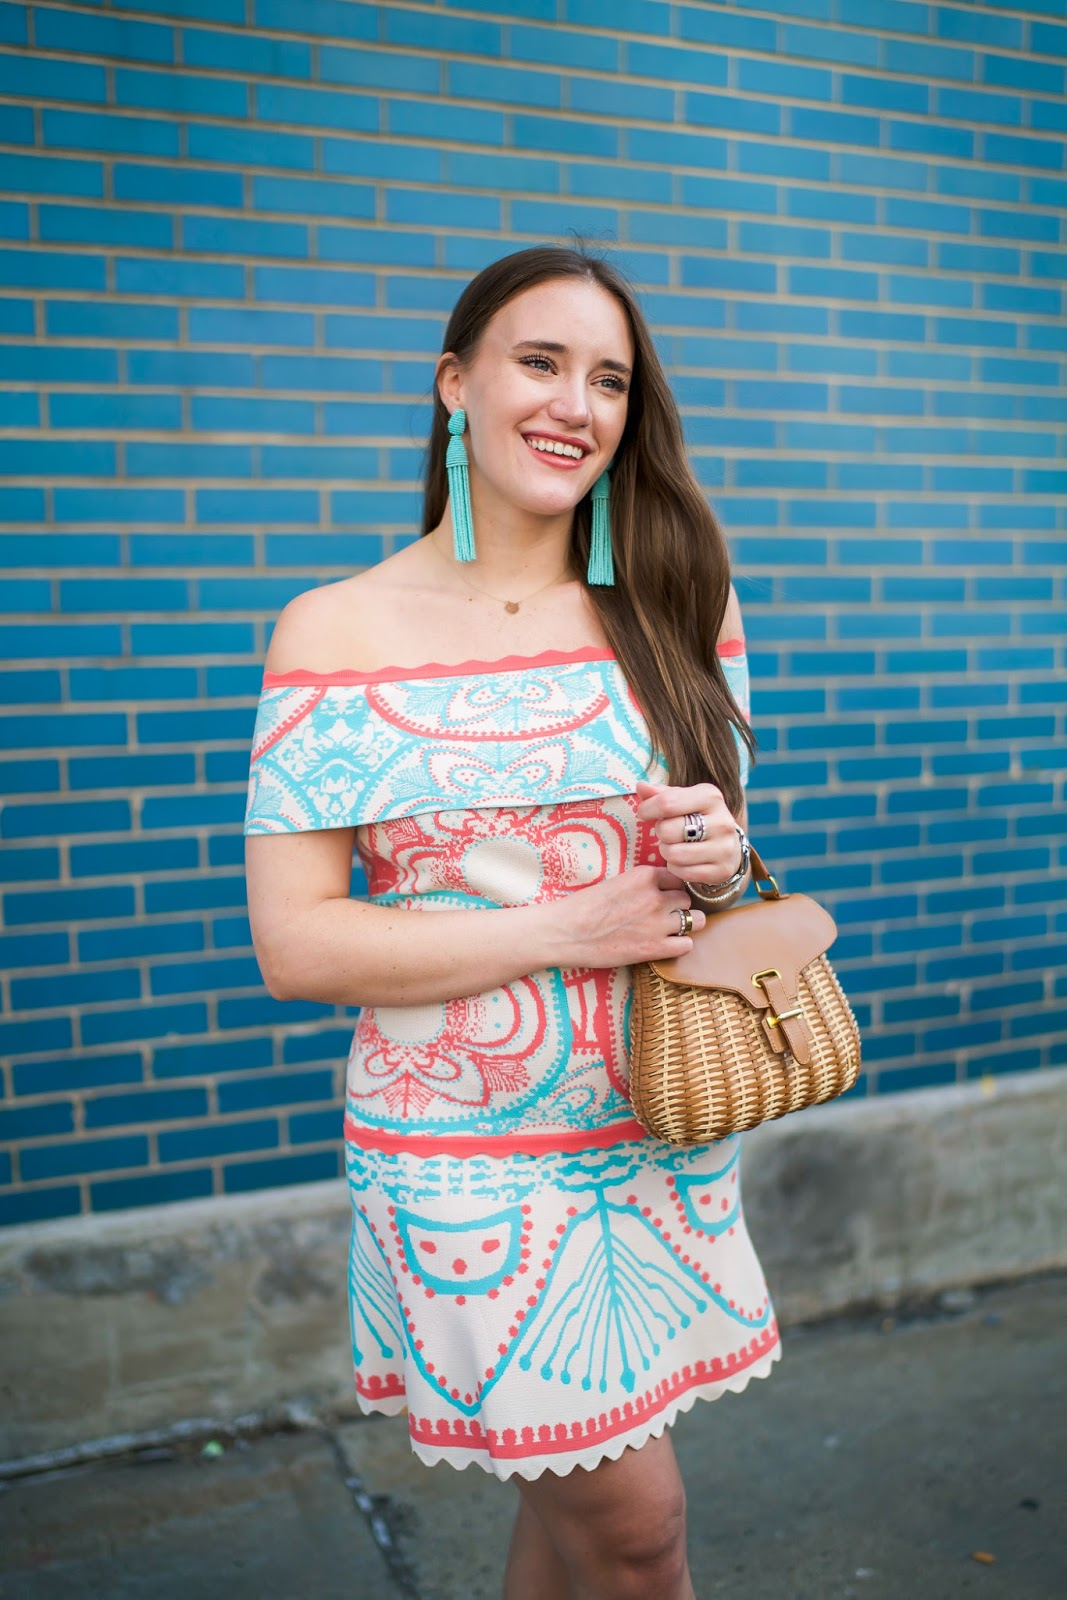 Wedding Look  styled by popular New York fashion blogger, Covering Bases